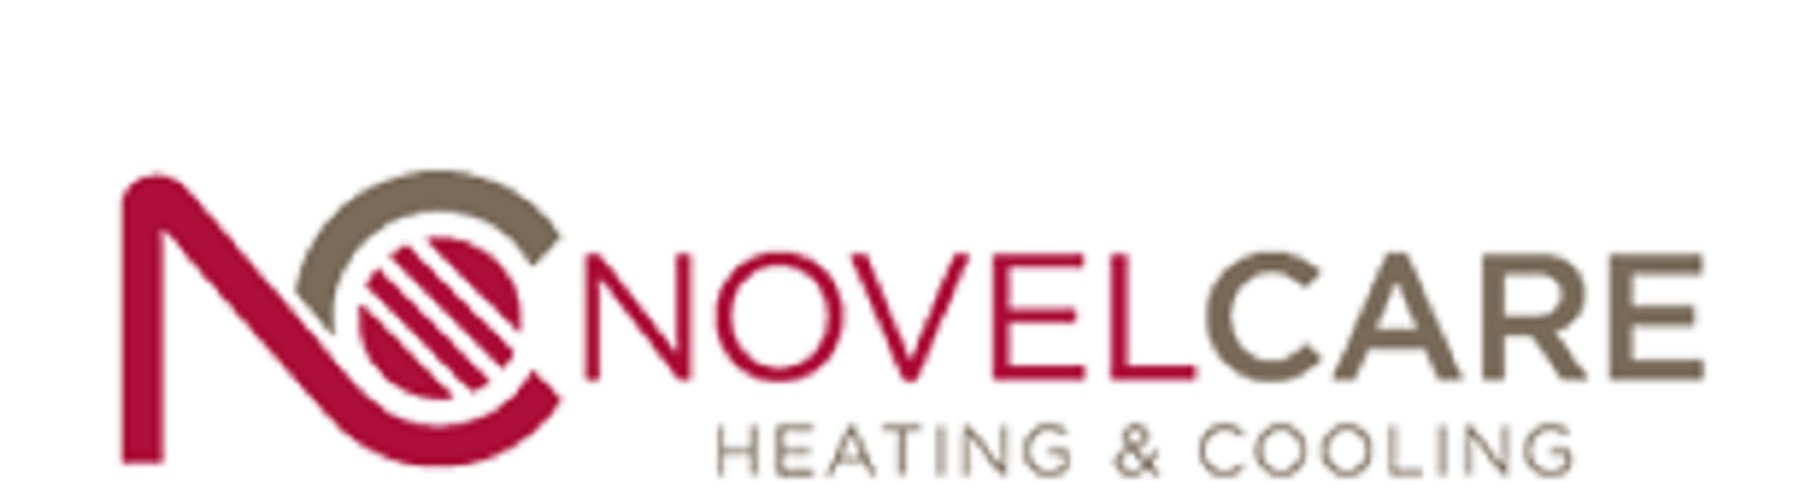 Novel Care Inc.